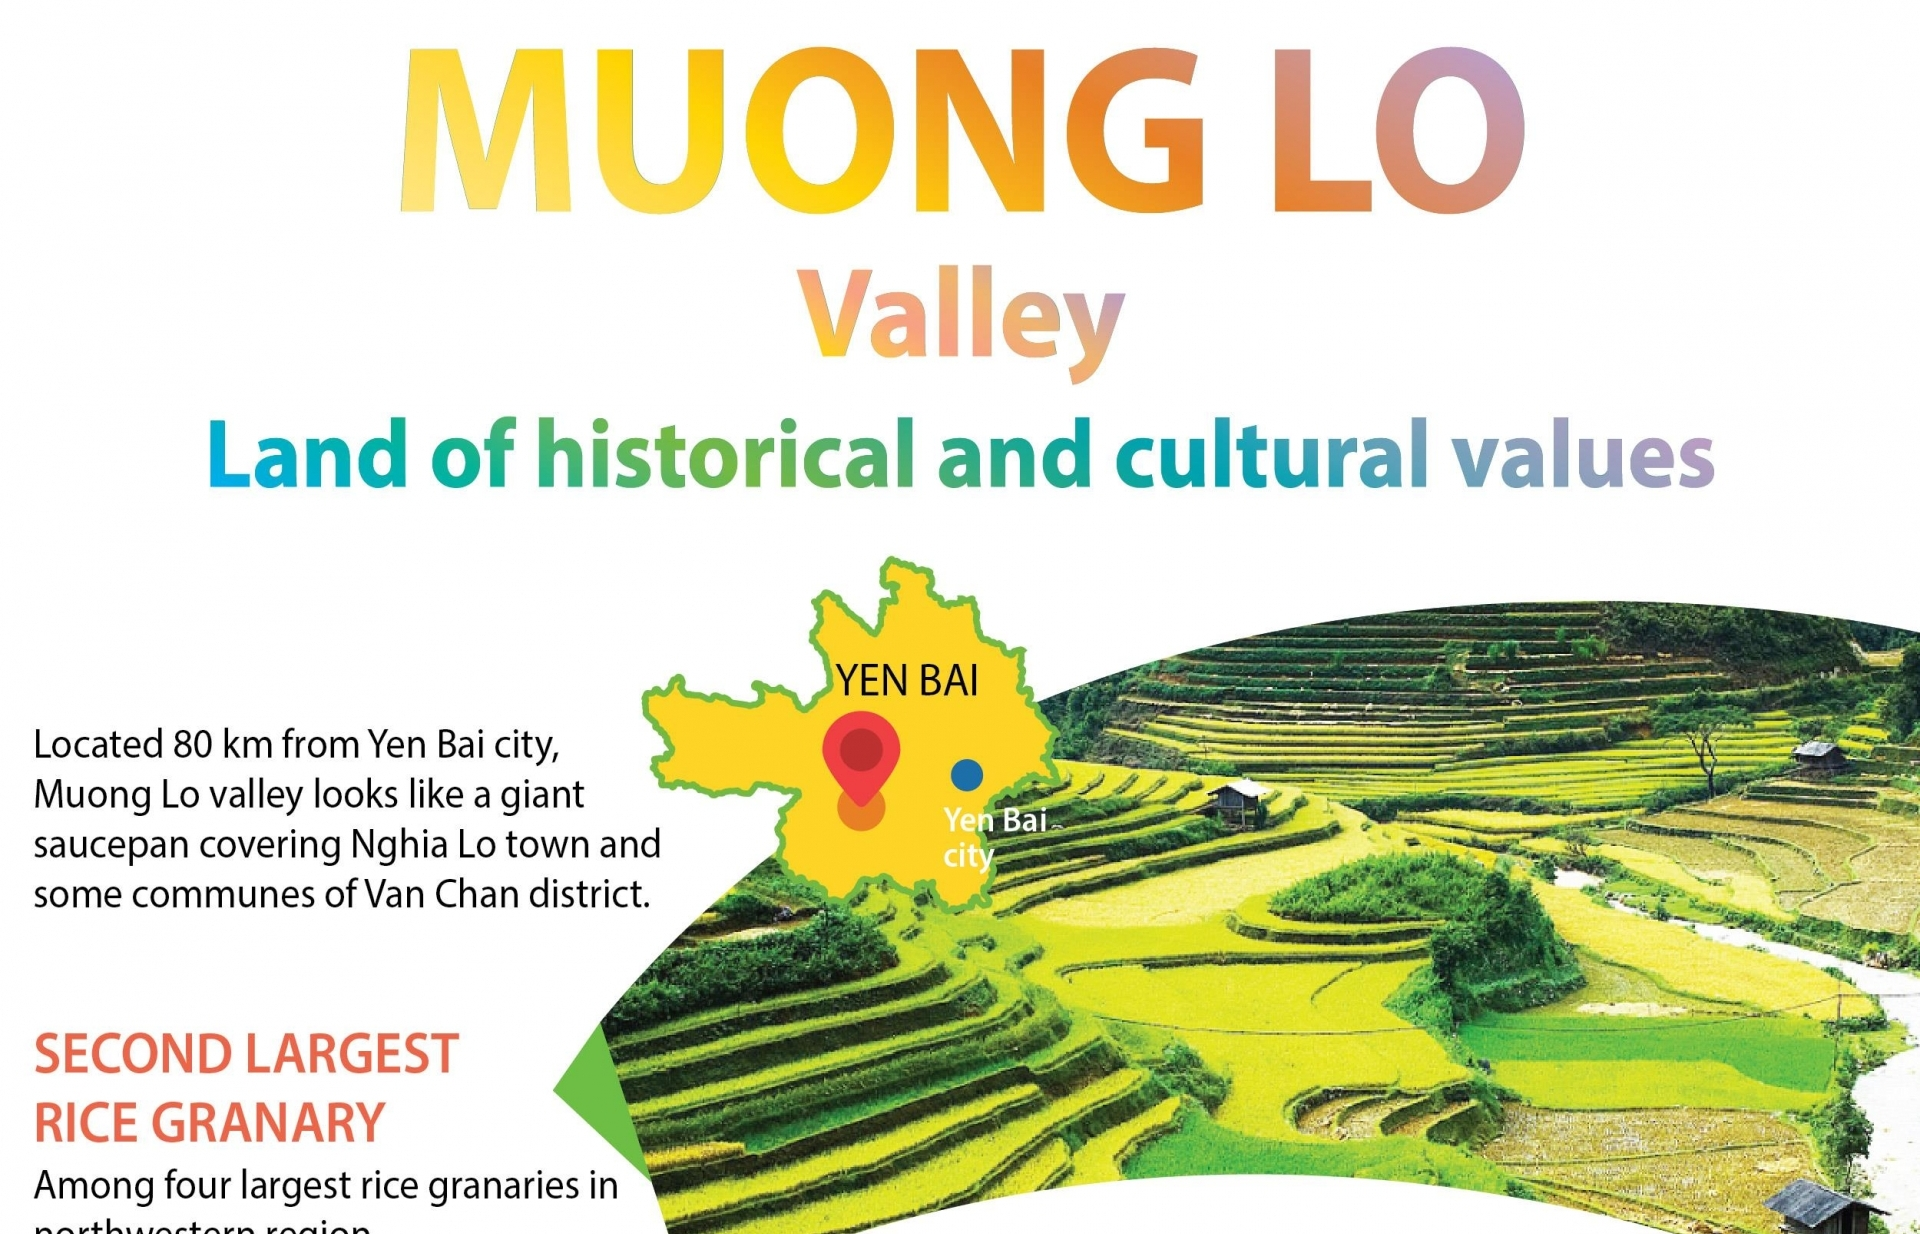 Muong Lo valley: Land of historical and cultural values